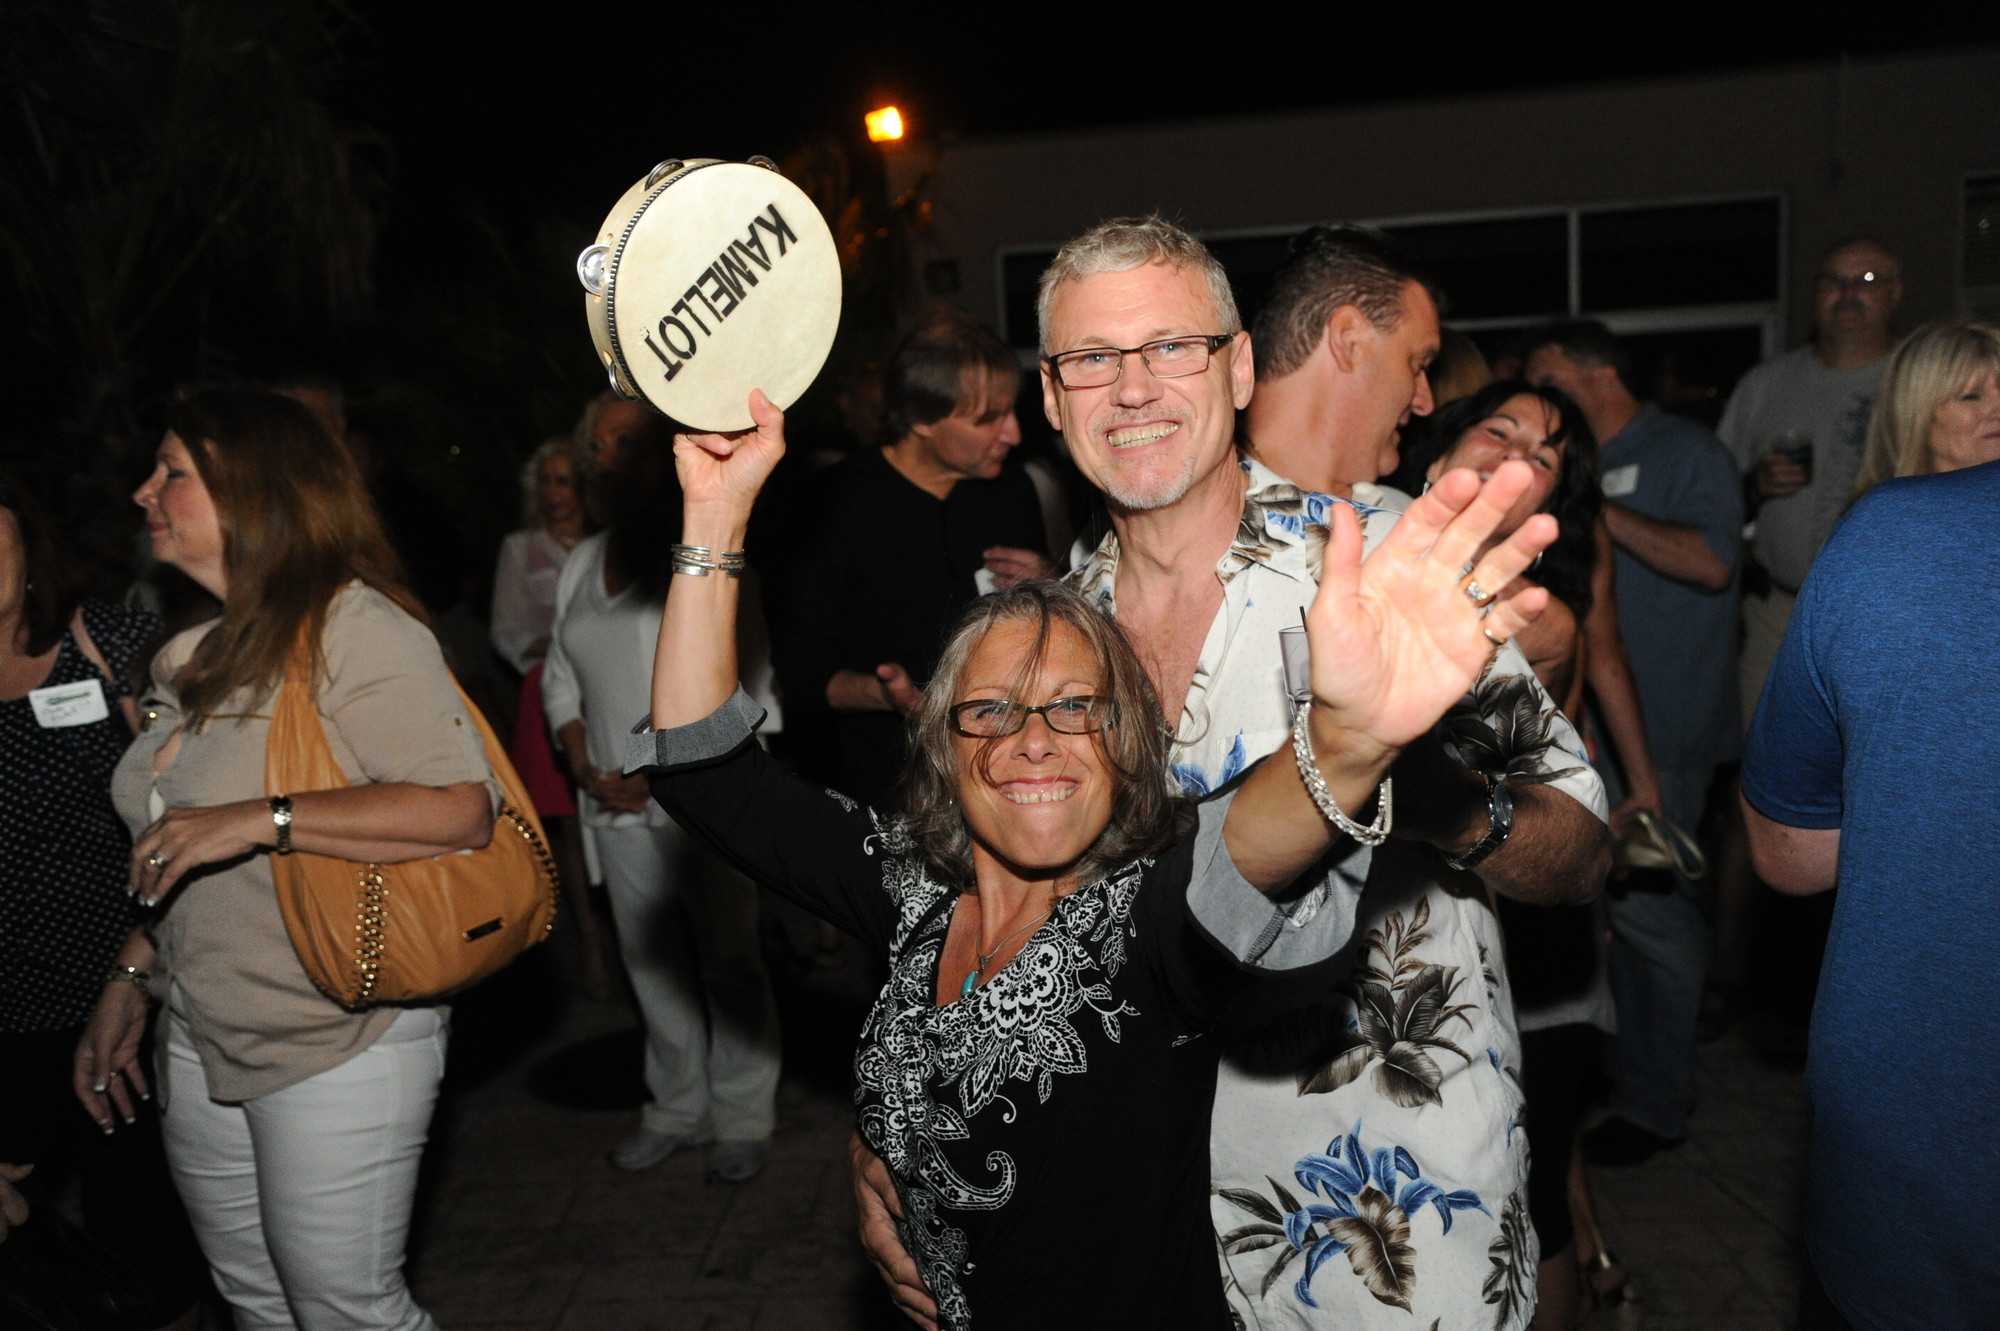 Jim Burdeshaw, a member of Calhoun High School's class of 1974, danced with his wife, Denise, to the sounds of Kamellot, a band made up of Kennedy High School alumni. The group performed at the Bellmore-Merrick multi-year, multi-school reunion at MaliBlue Oyster Bar last weekend.